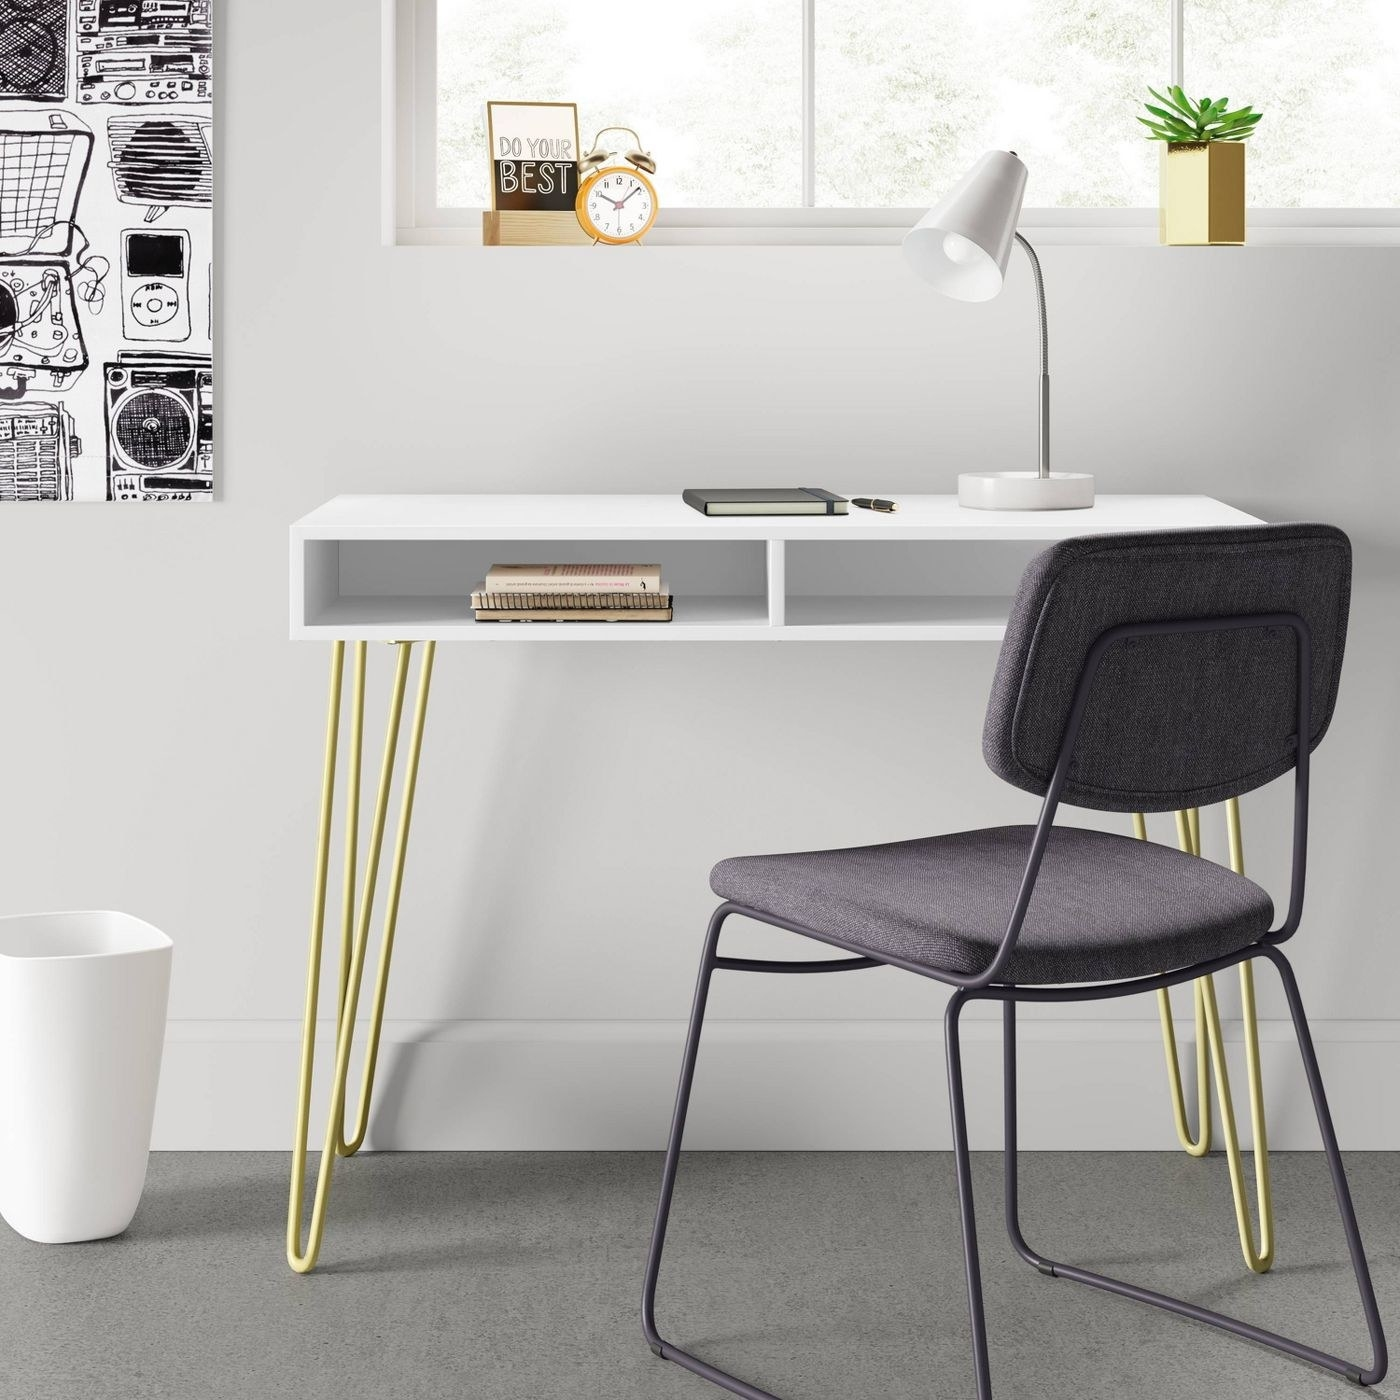 the white desk with gold legs